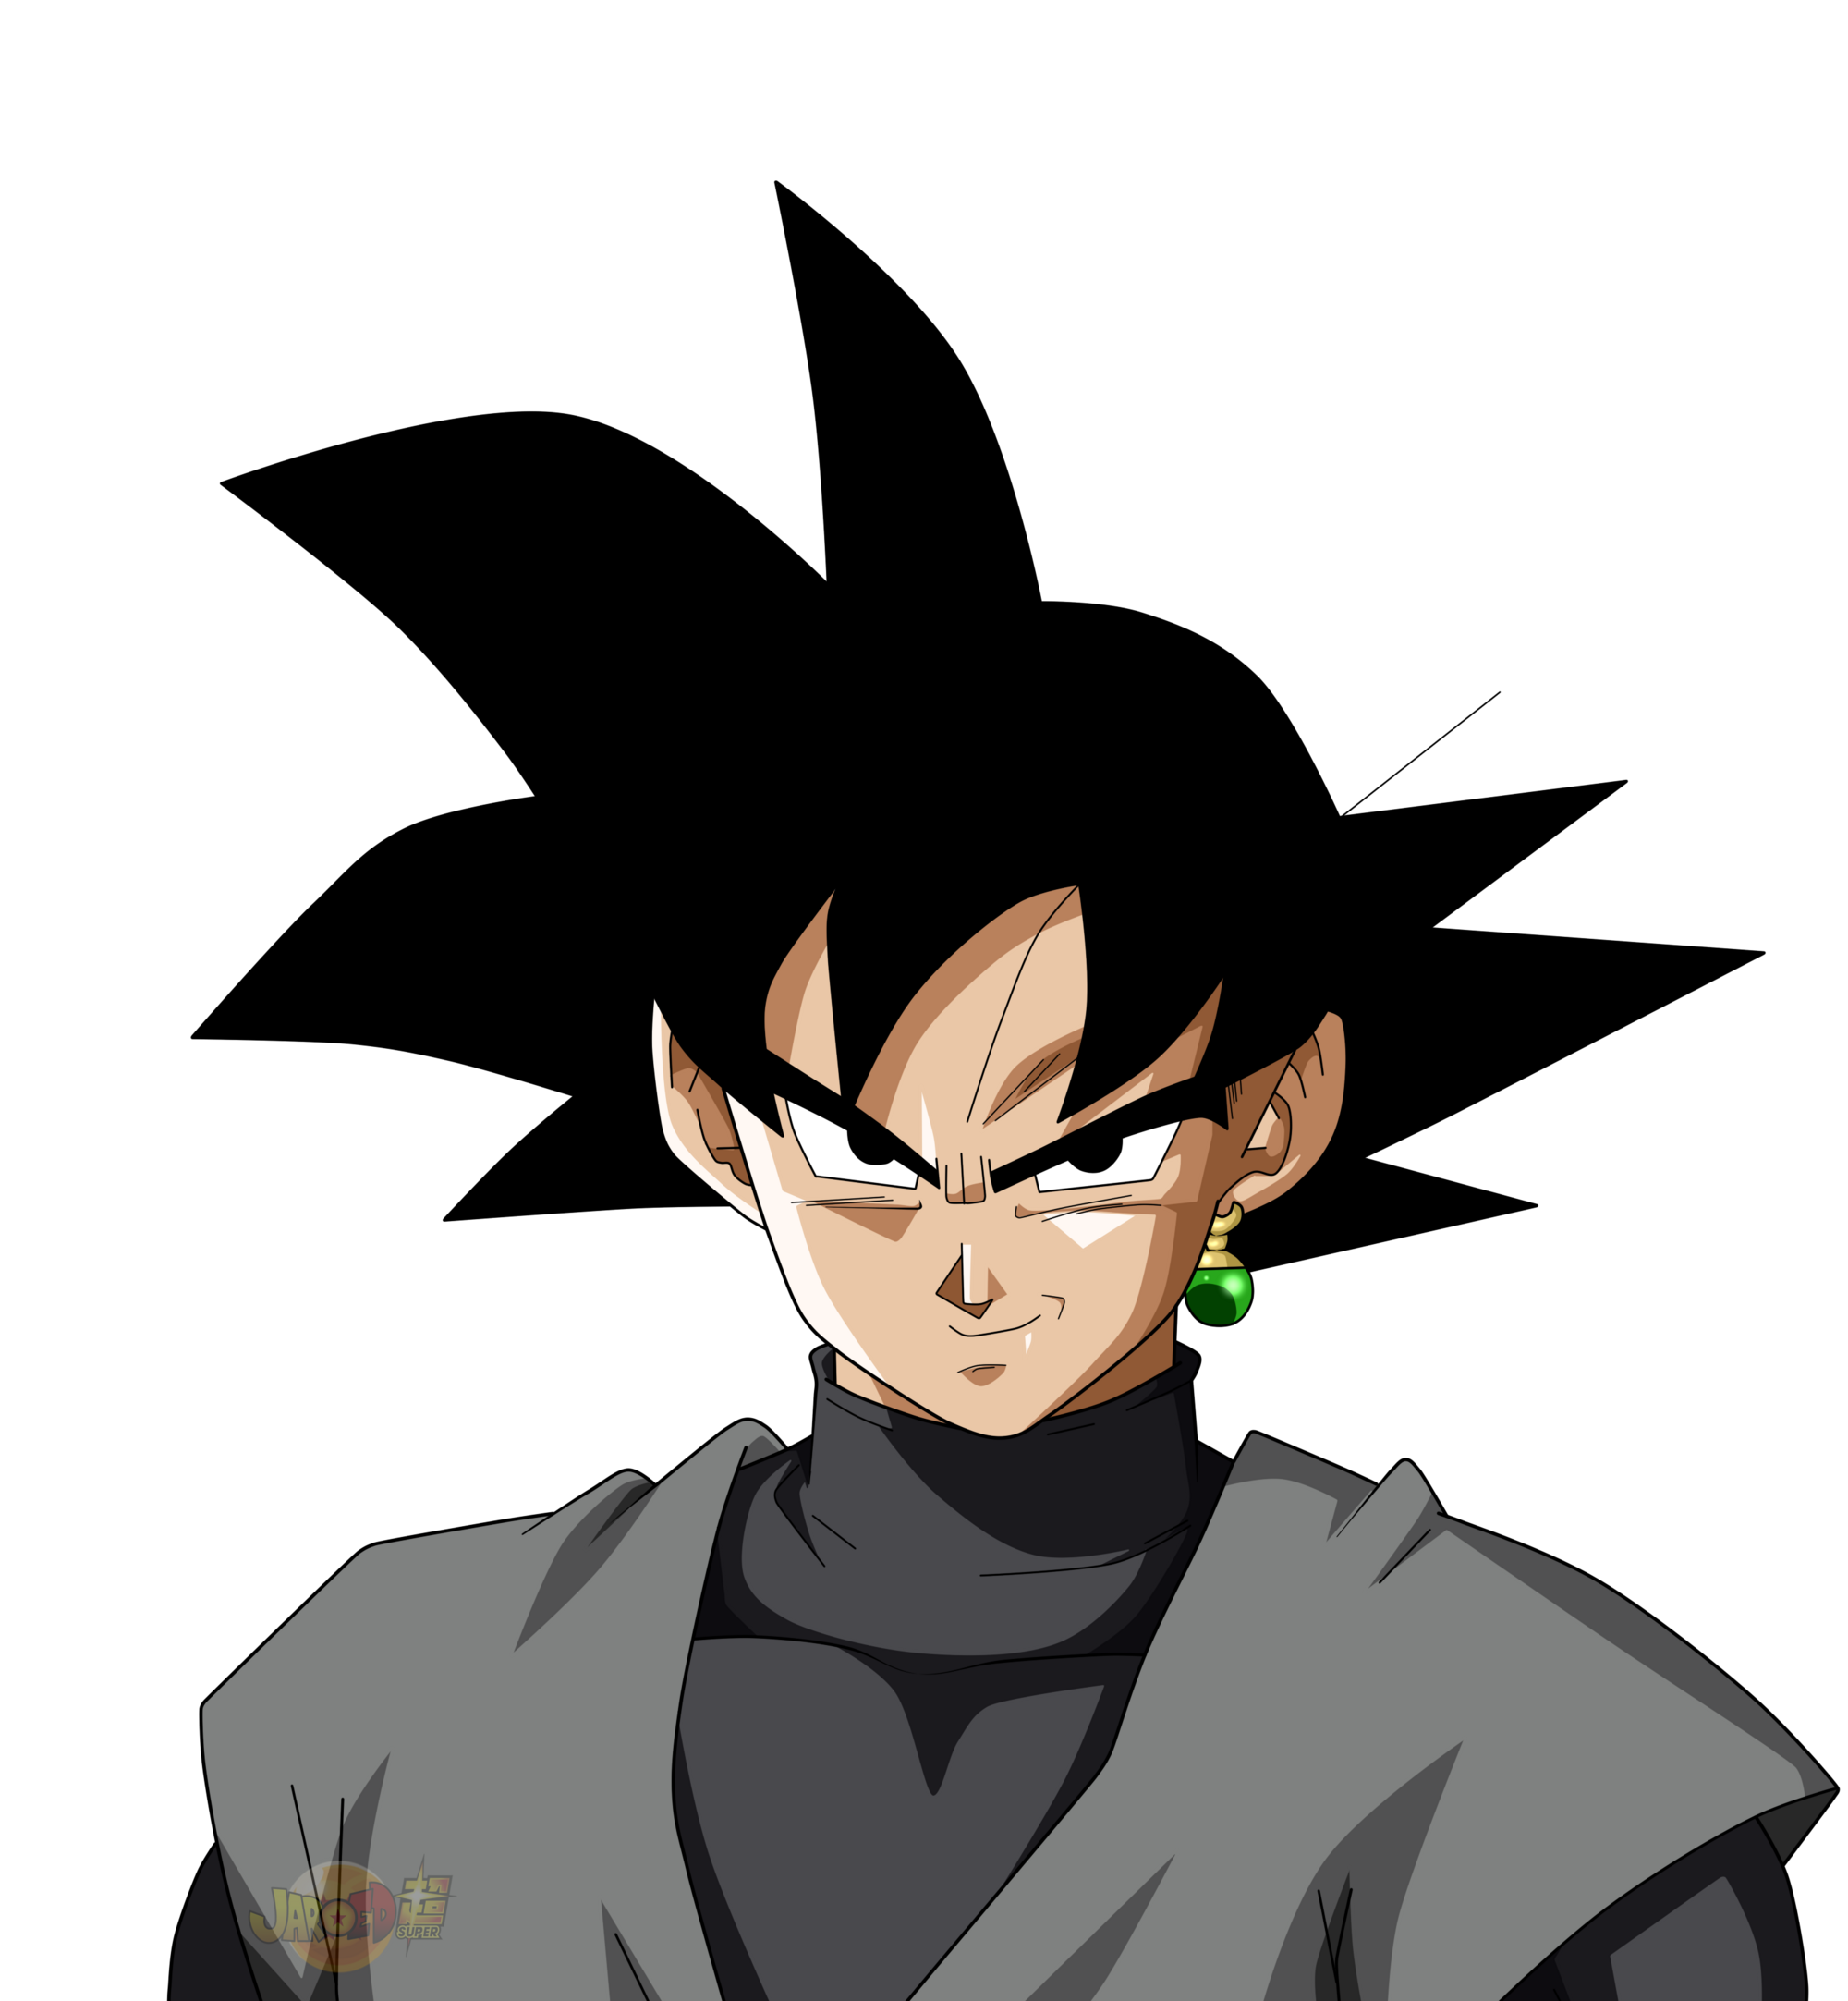 goku black zekons dragonball fanon wiki fandom powered by wikia. Black Bedroom Furniture Sets. Home Design Ideas